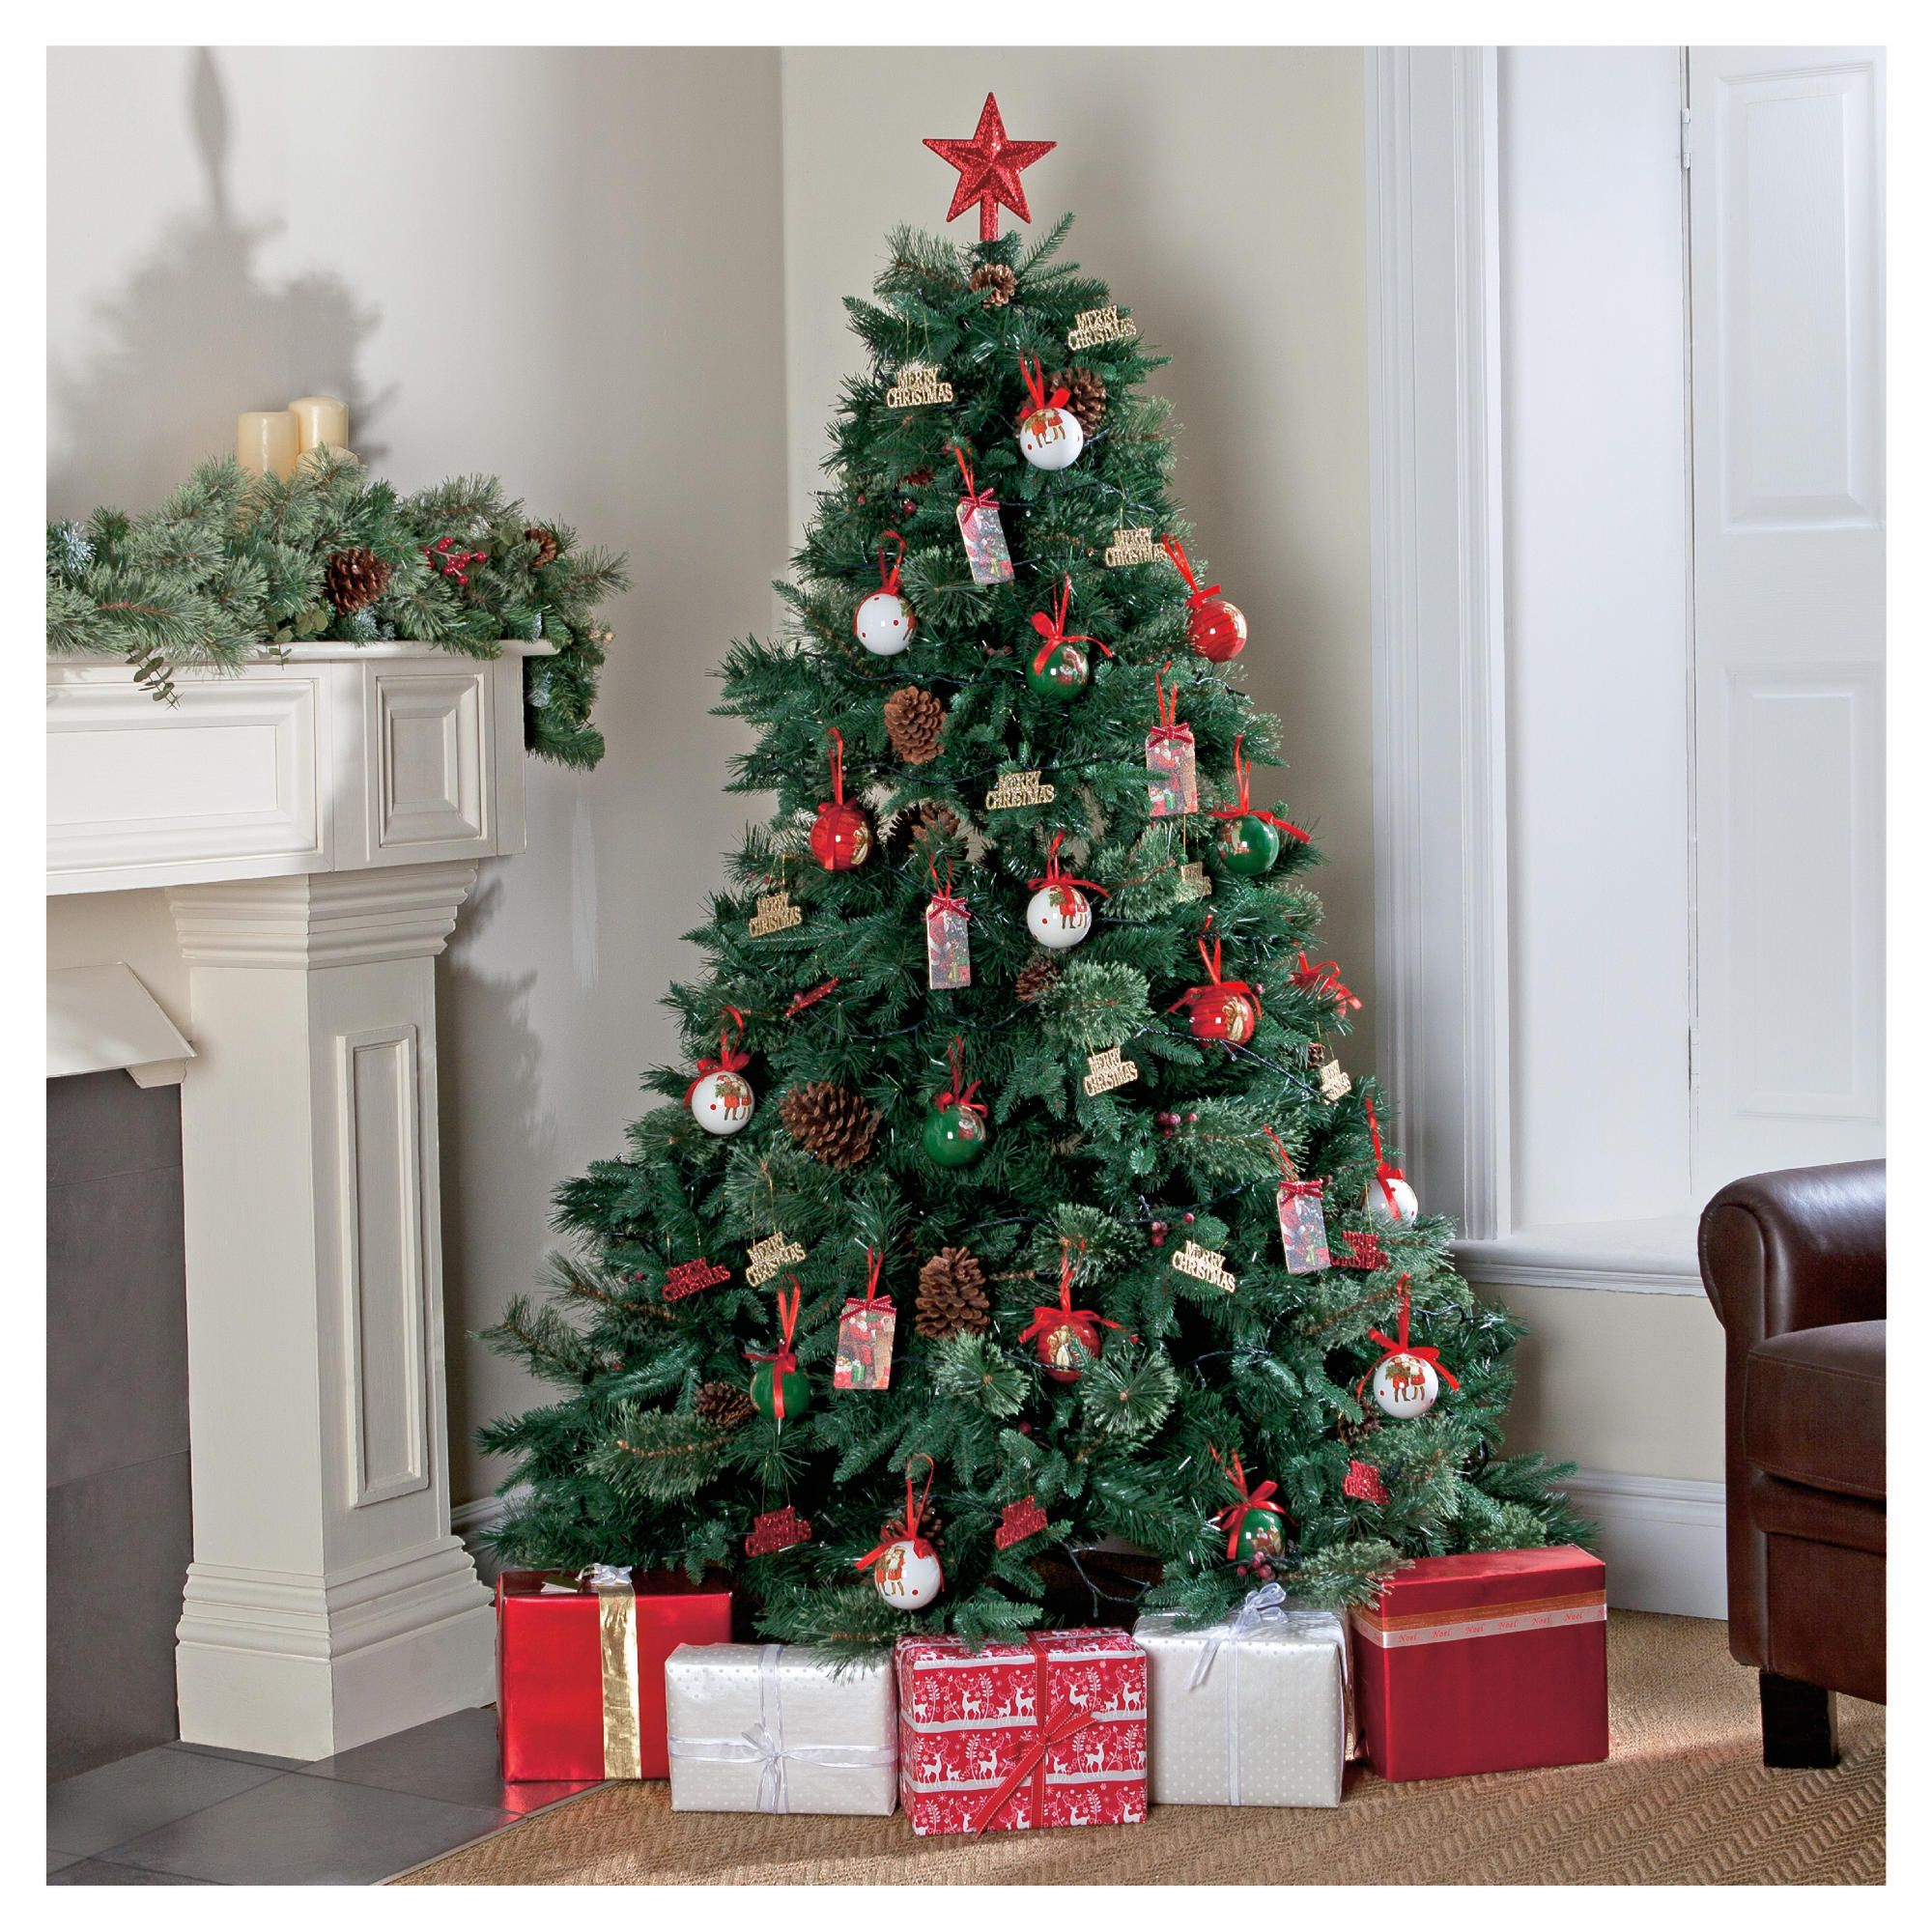 Luxurious Christmas Trees: Tesco 7ft Luxury Regency Fir Christmas Tree